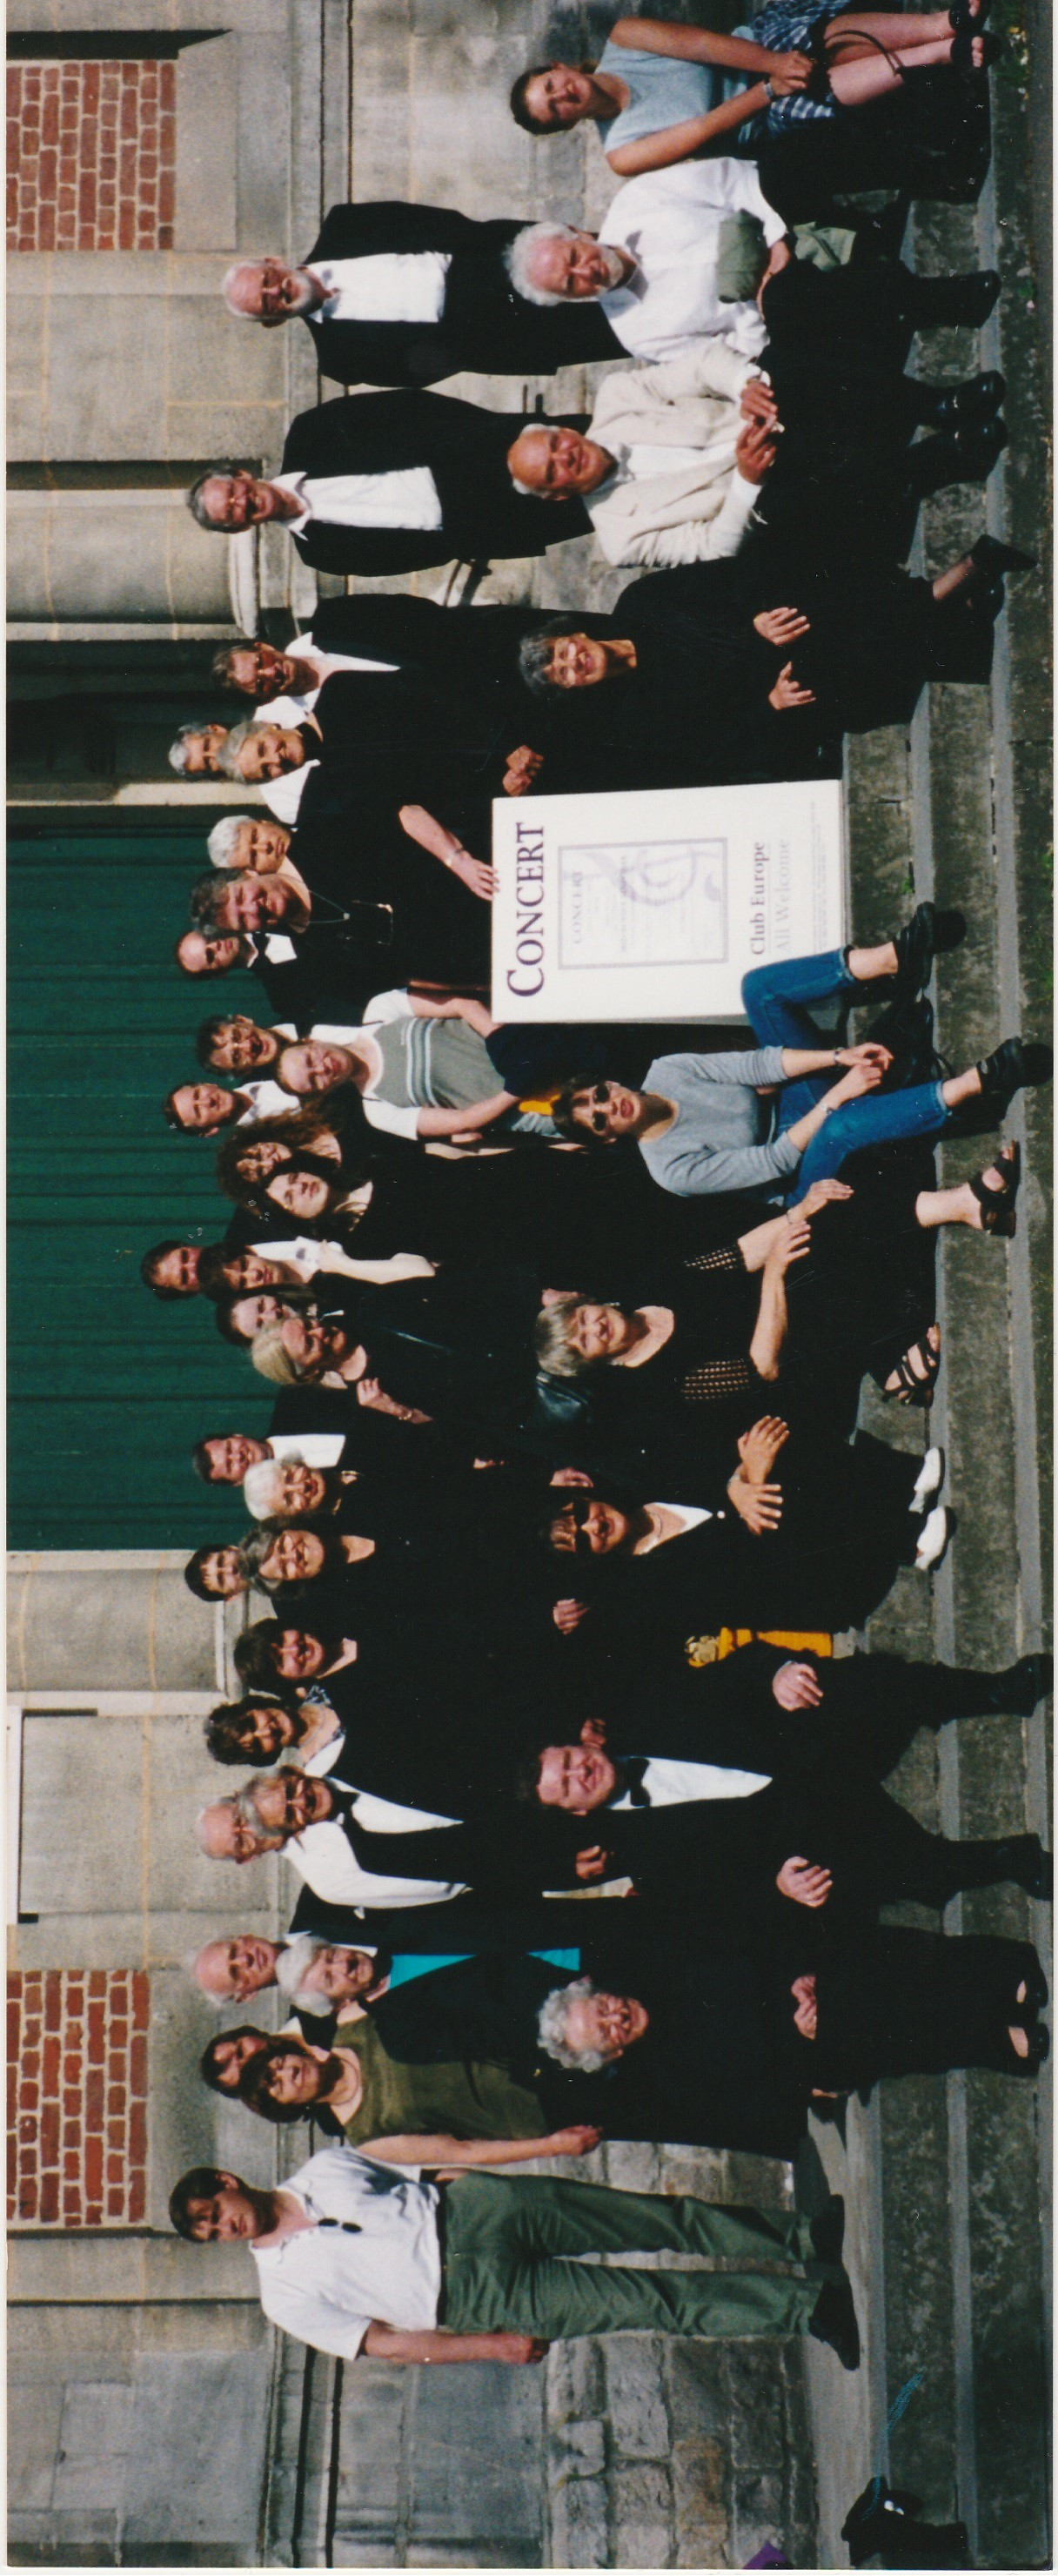 Tour to France and Belgium 2001